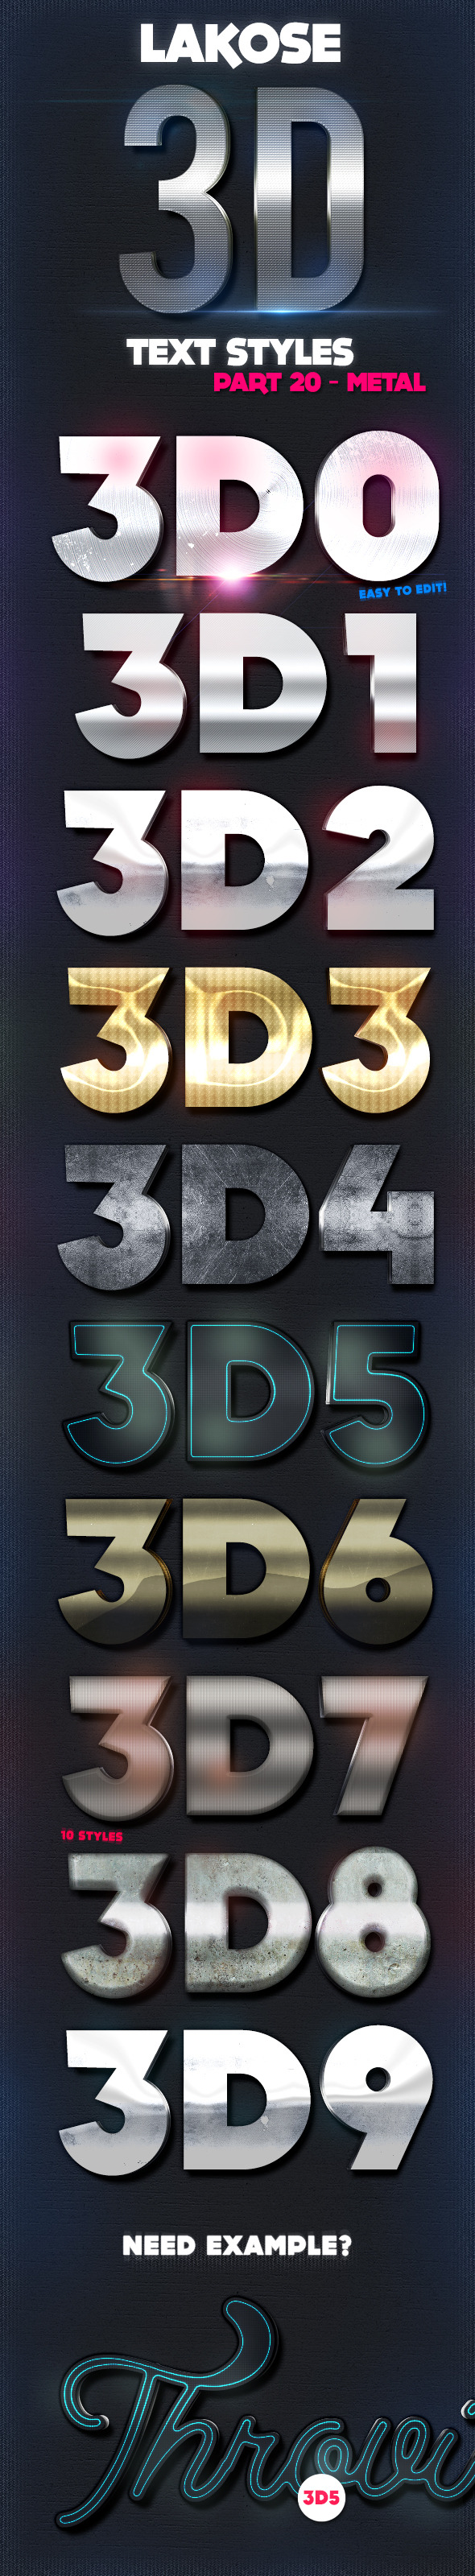 Lakose 3D Text Styles Part 20 - Text Effects Styles